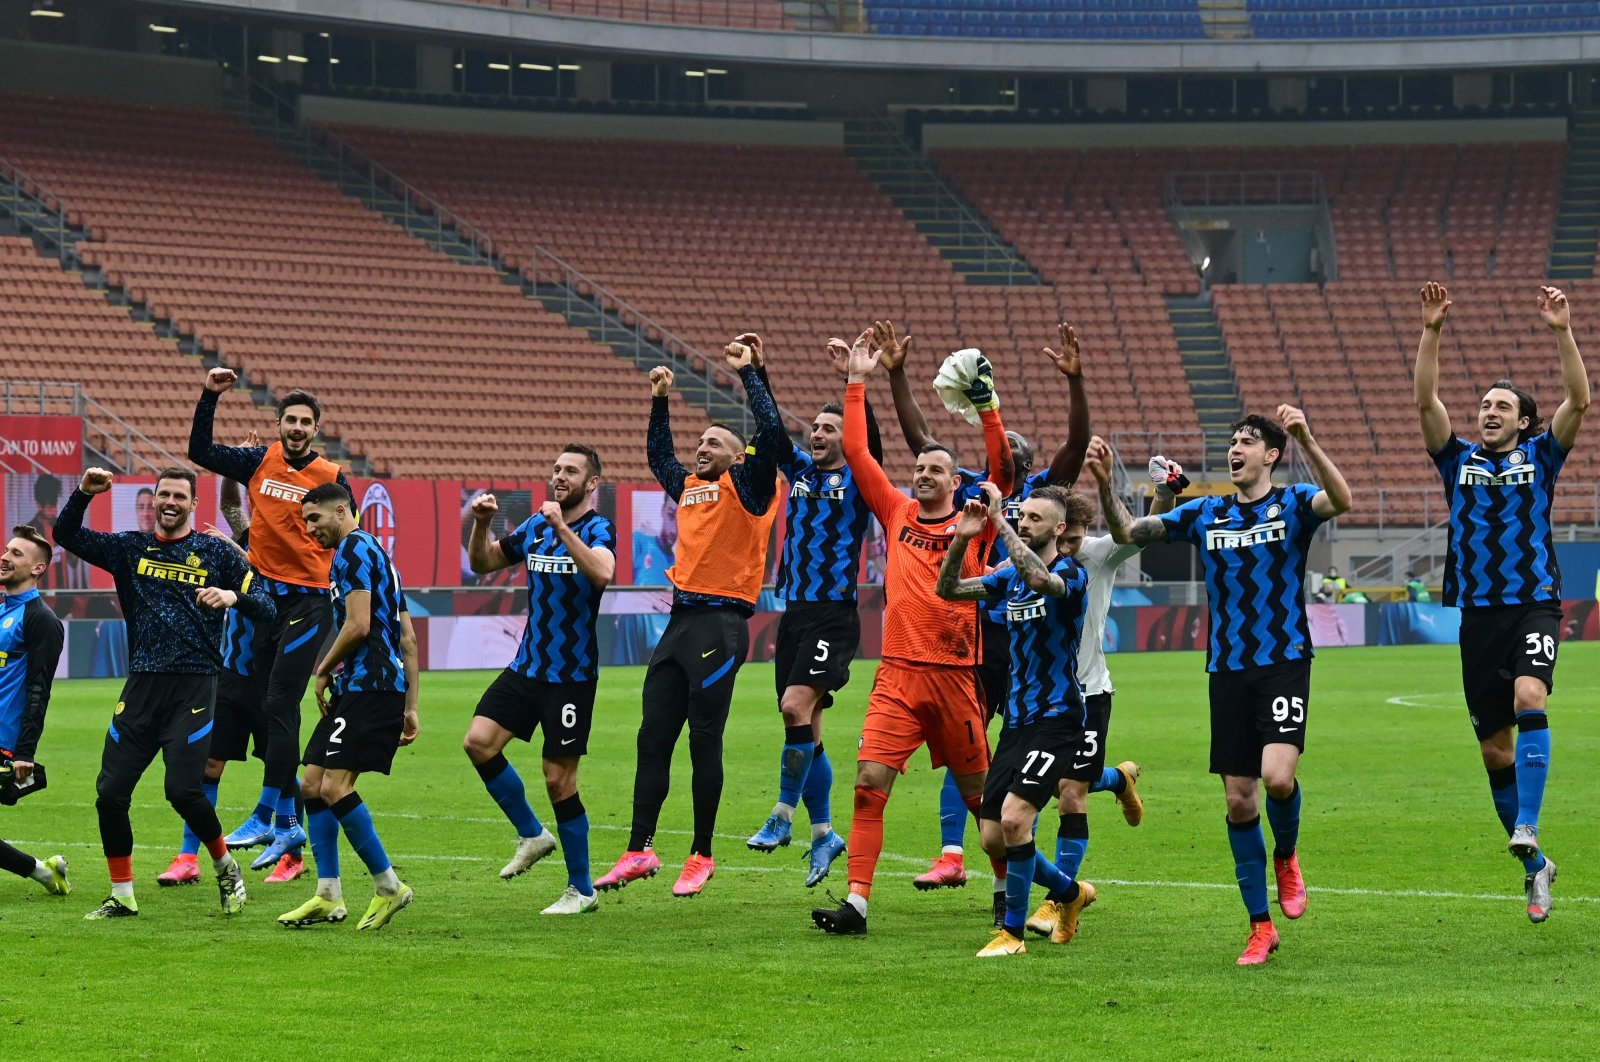 Inter players celebrate winning at the end of the Italian Serie A football match AC Milan vs Inter Milan at the San Siro stadium in Milan, Feb. 21, 2021. (AFP Photo)